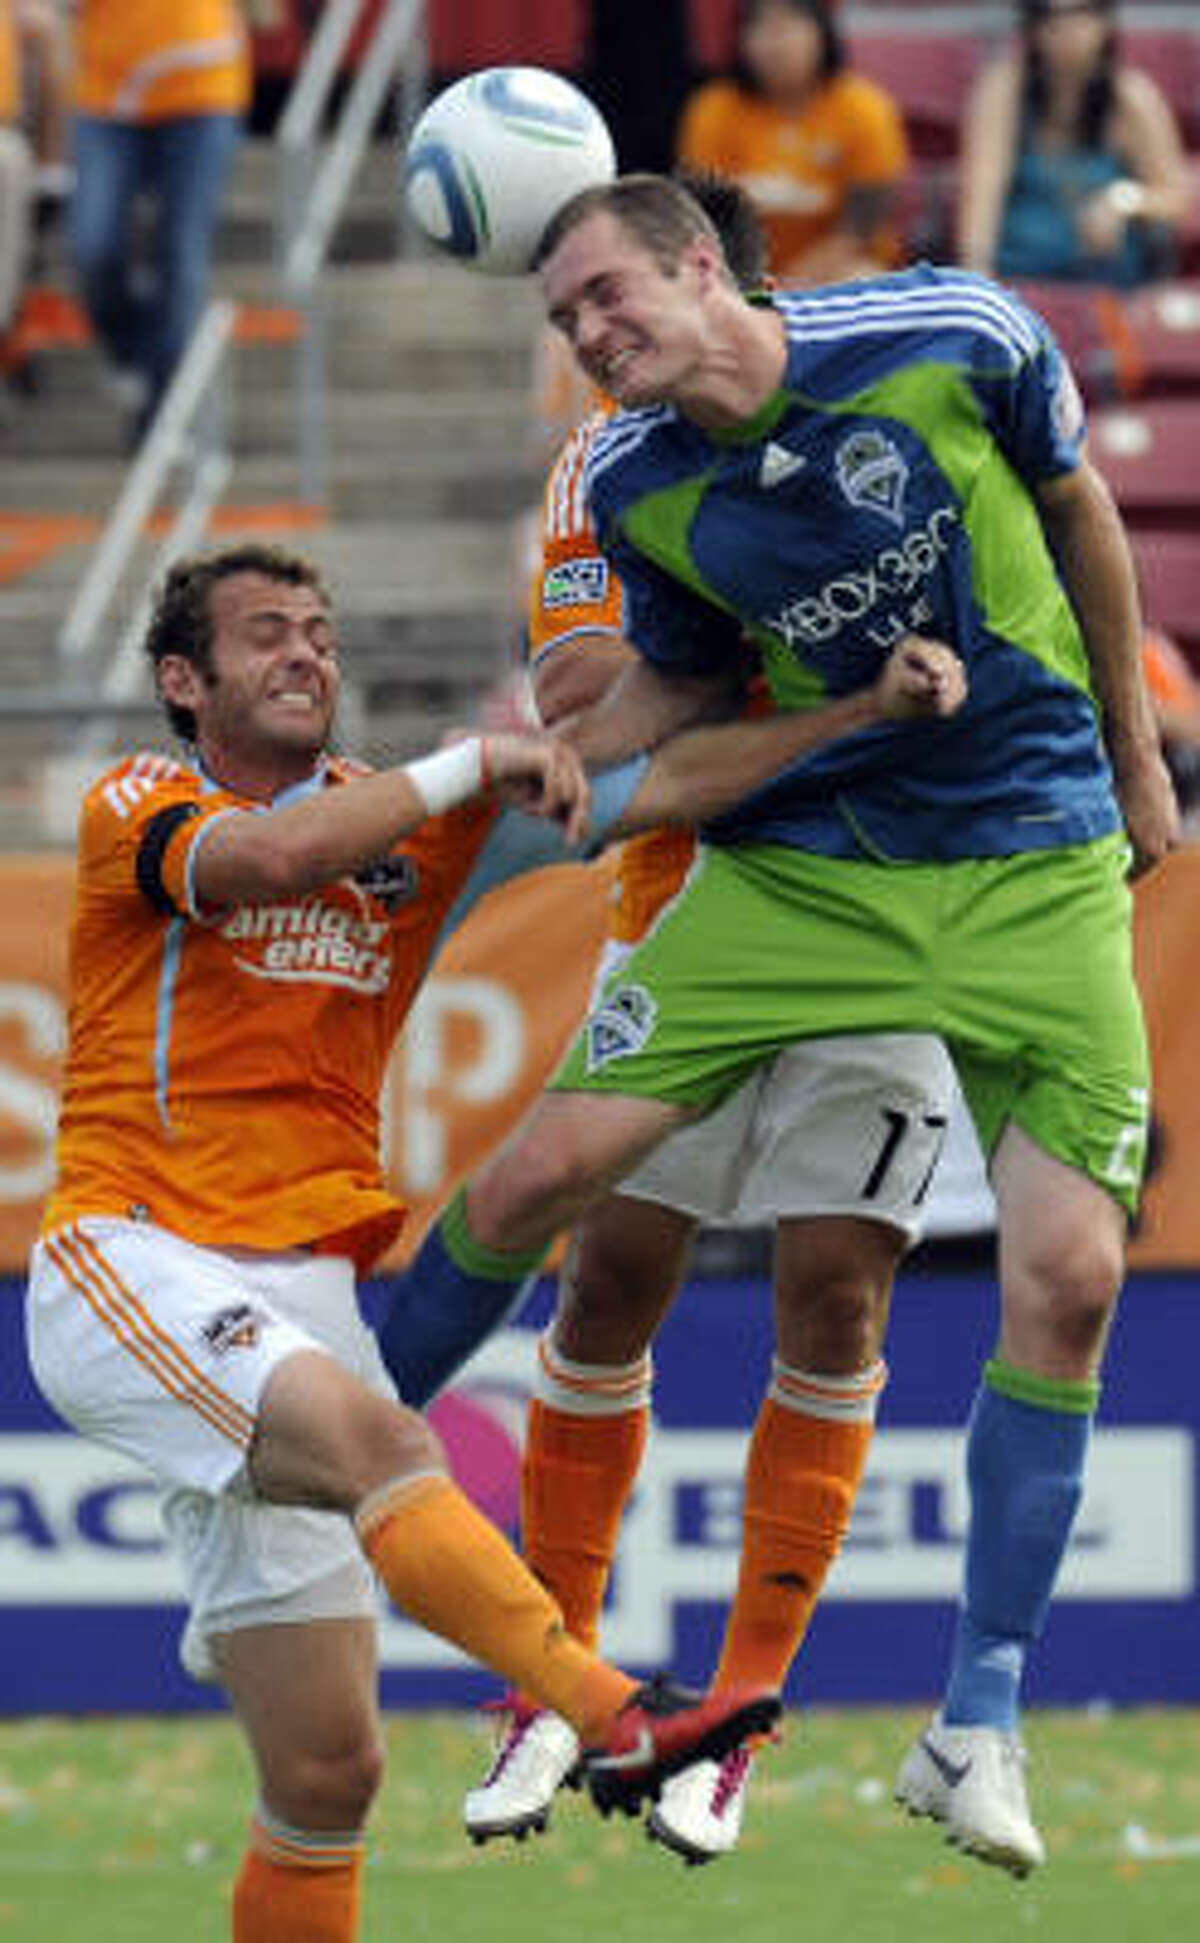 Dynamo 2, Sounders 1 Seattle Sounders' Nate Jaqua heads the ball in front of the Dynamo's Brad Davis.